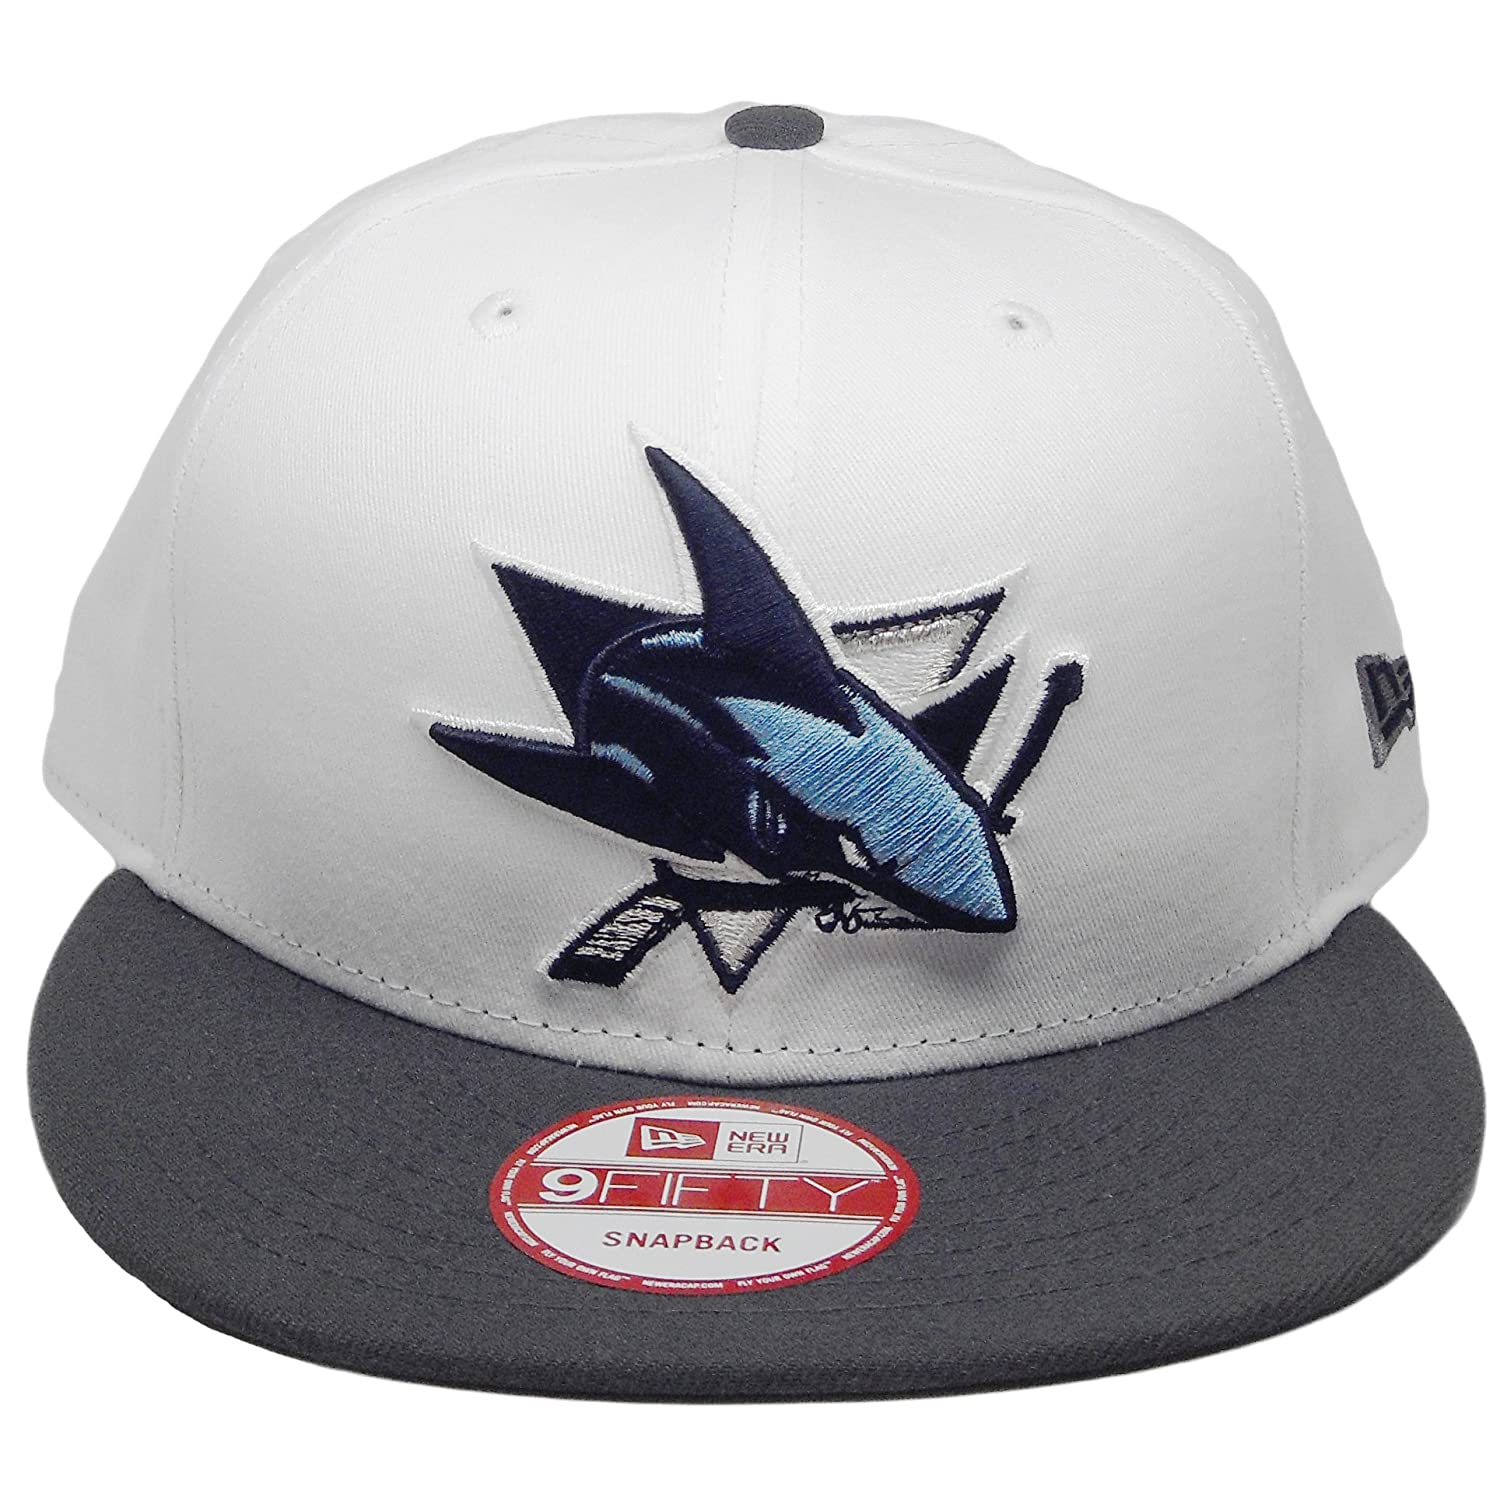 les sharks de san jose 9fifty mesure assorti la nouvelle ère chapeau assorti mesure air jordanie 12 loup gris 782a62